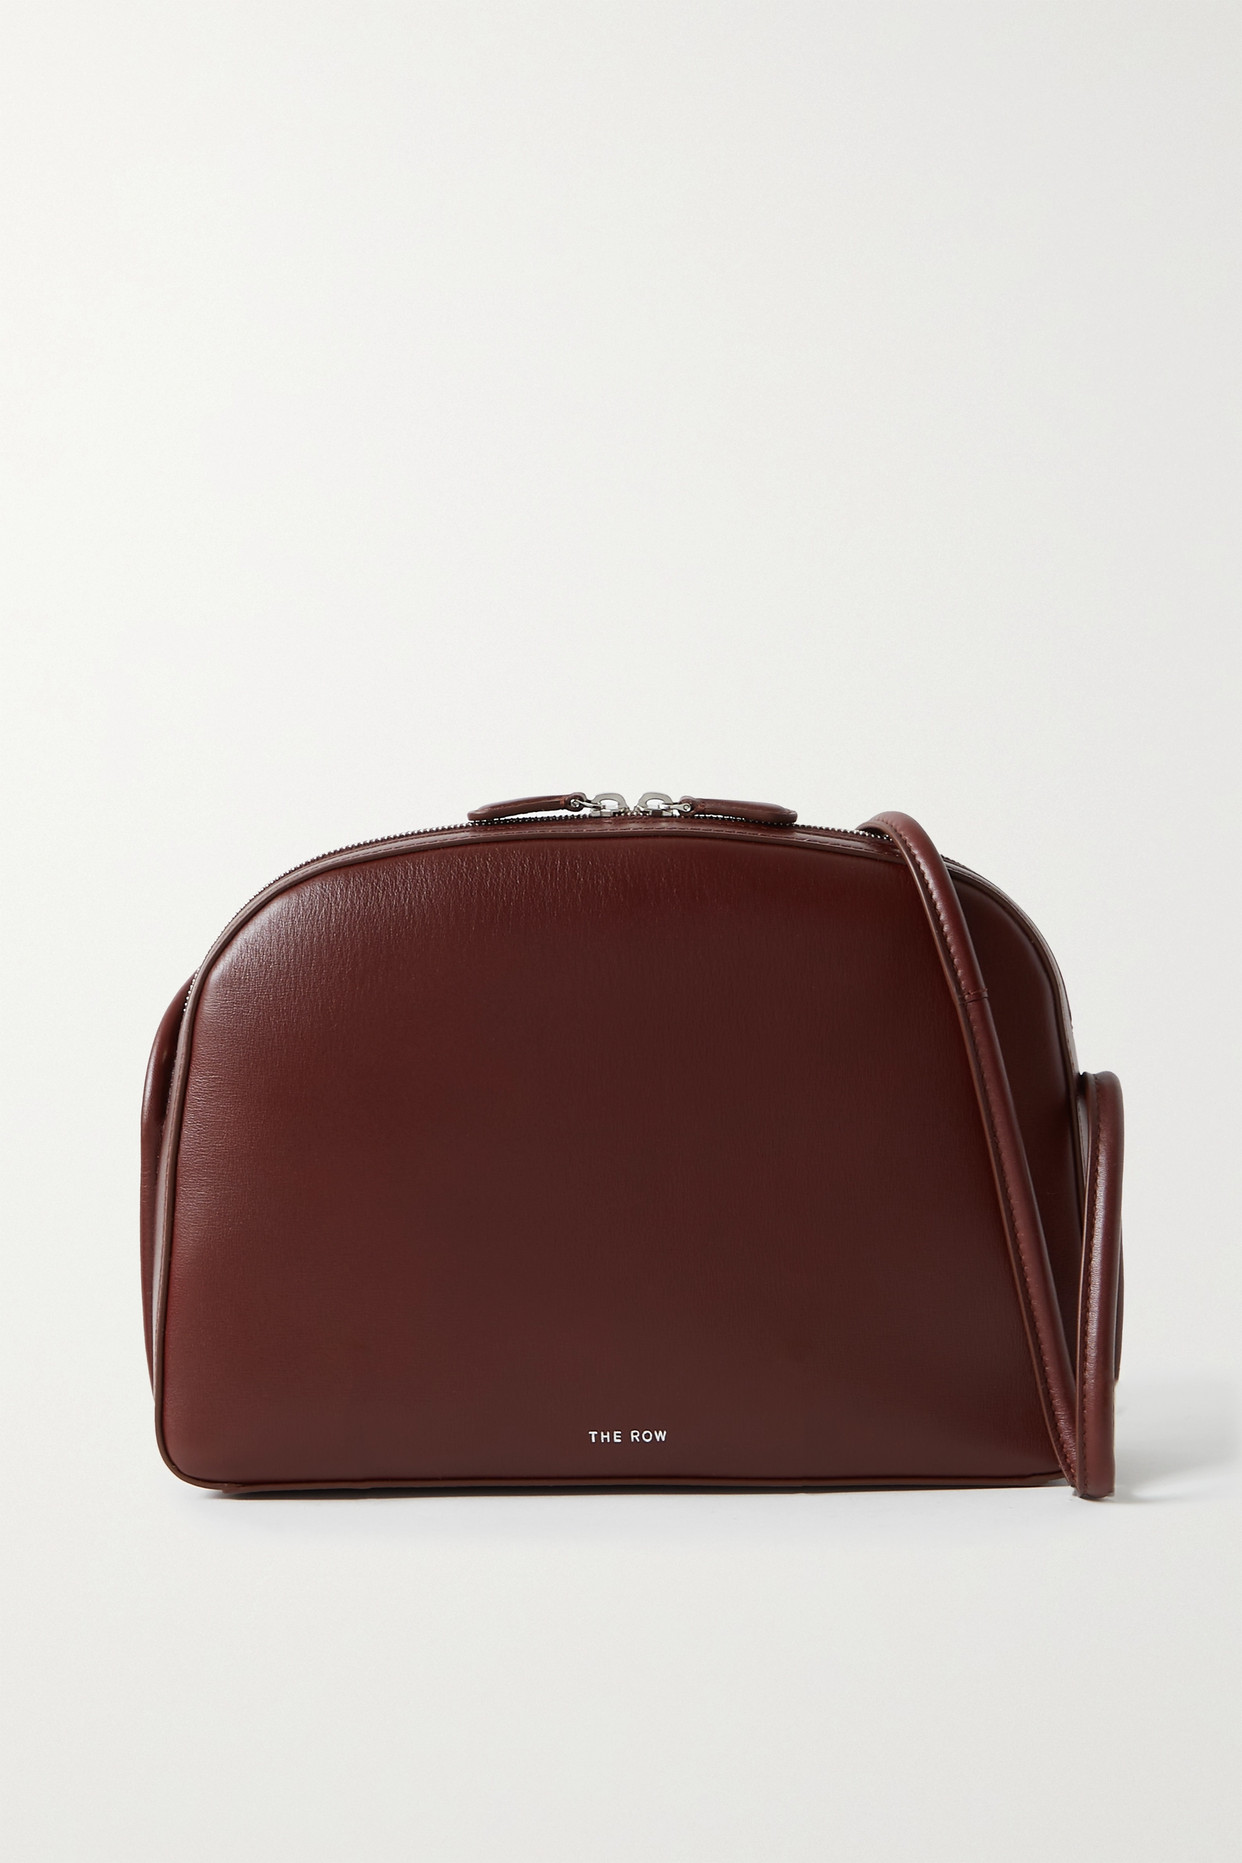 The Row Single Mignon Leather Shoulder Bag In Burgundy